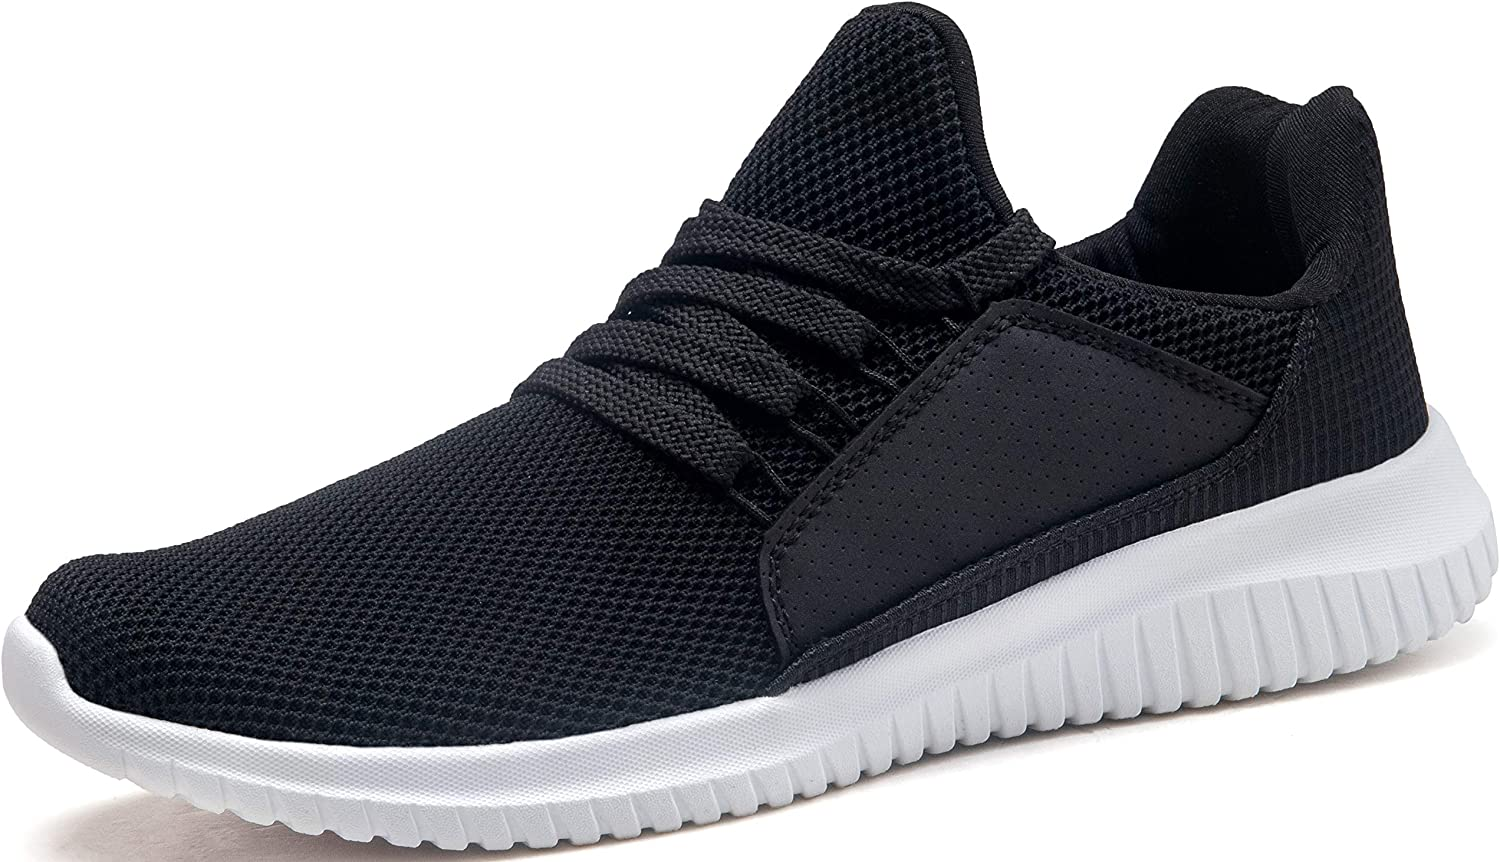 Krystory Women and Men Ultra Lightweight Athletic Shoes Casual Mesh Walking Sneakers Breathable Sport Running Shoes, Black White,8.5 M US Women 7 M US Men